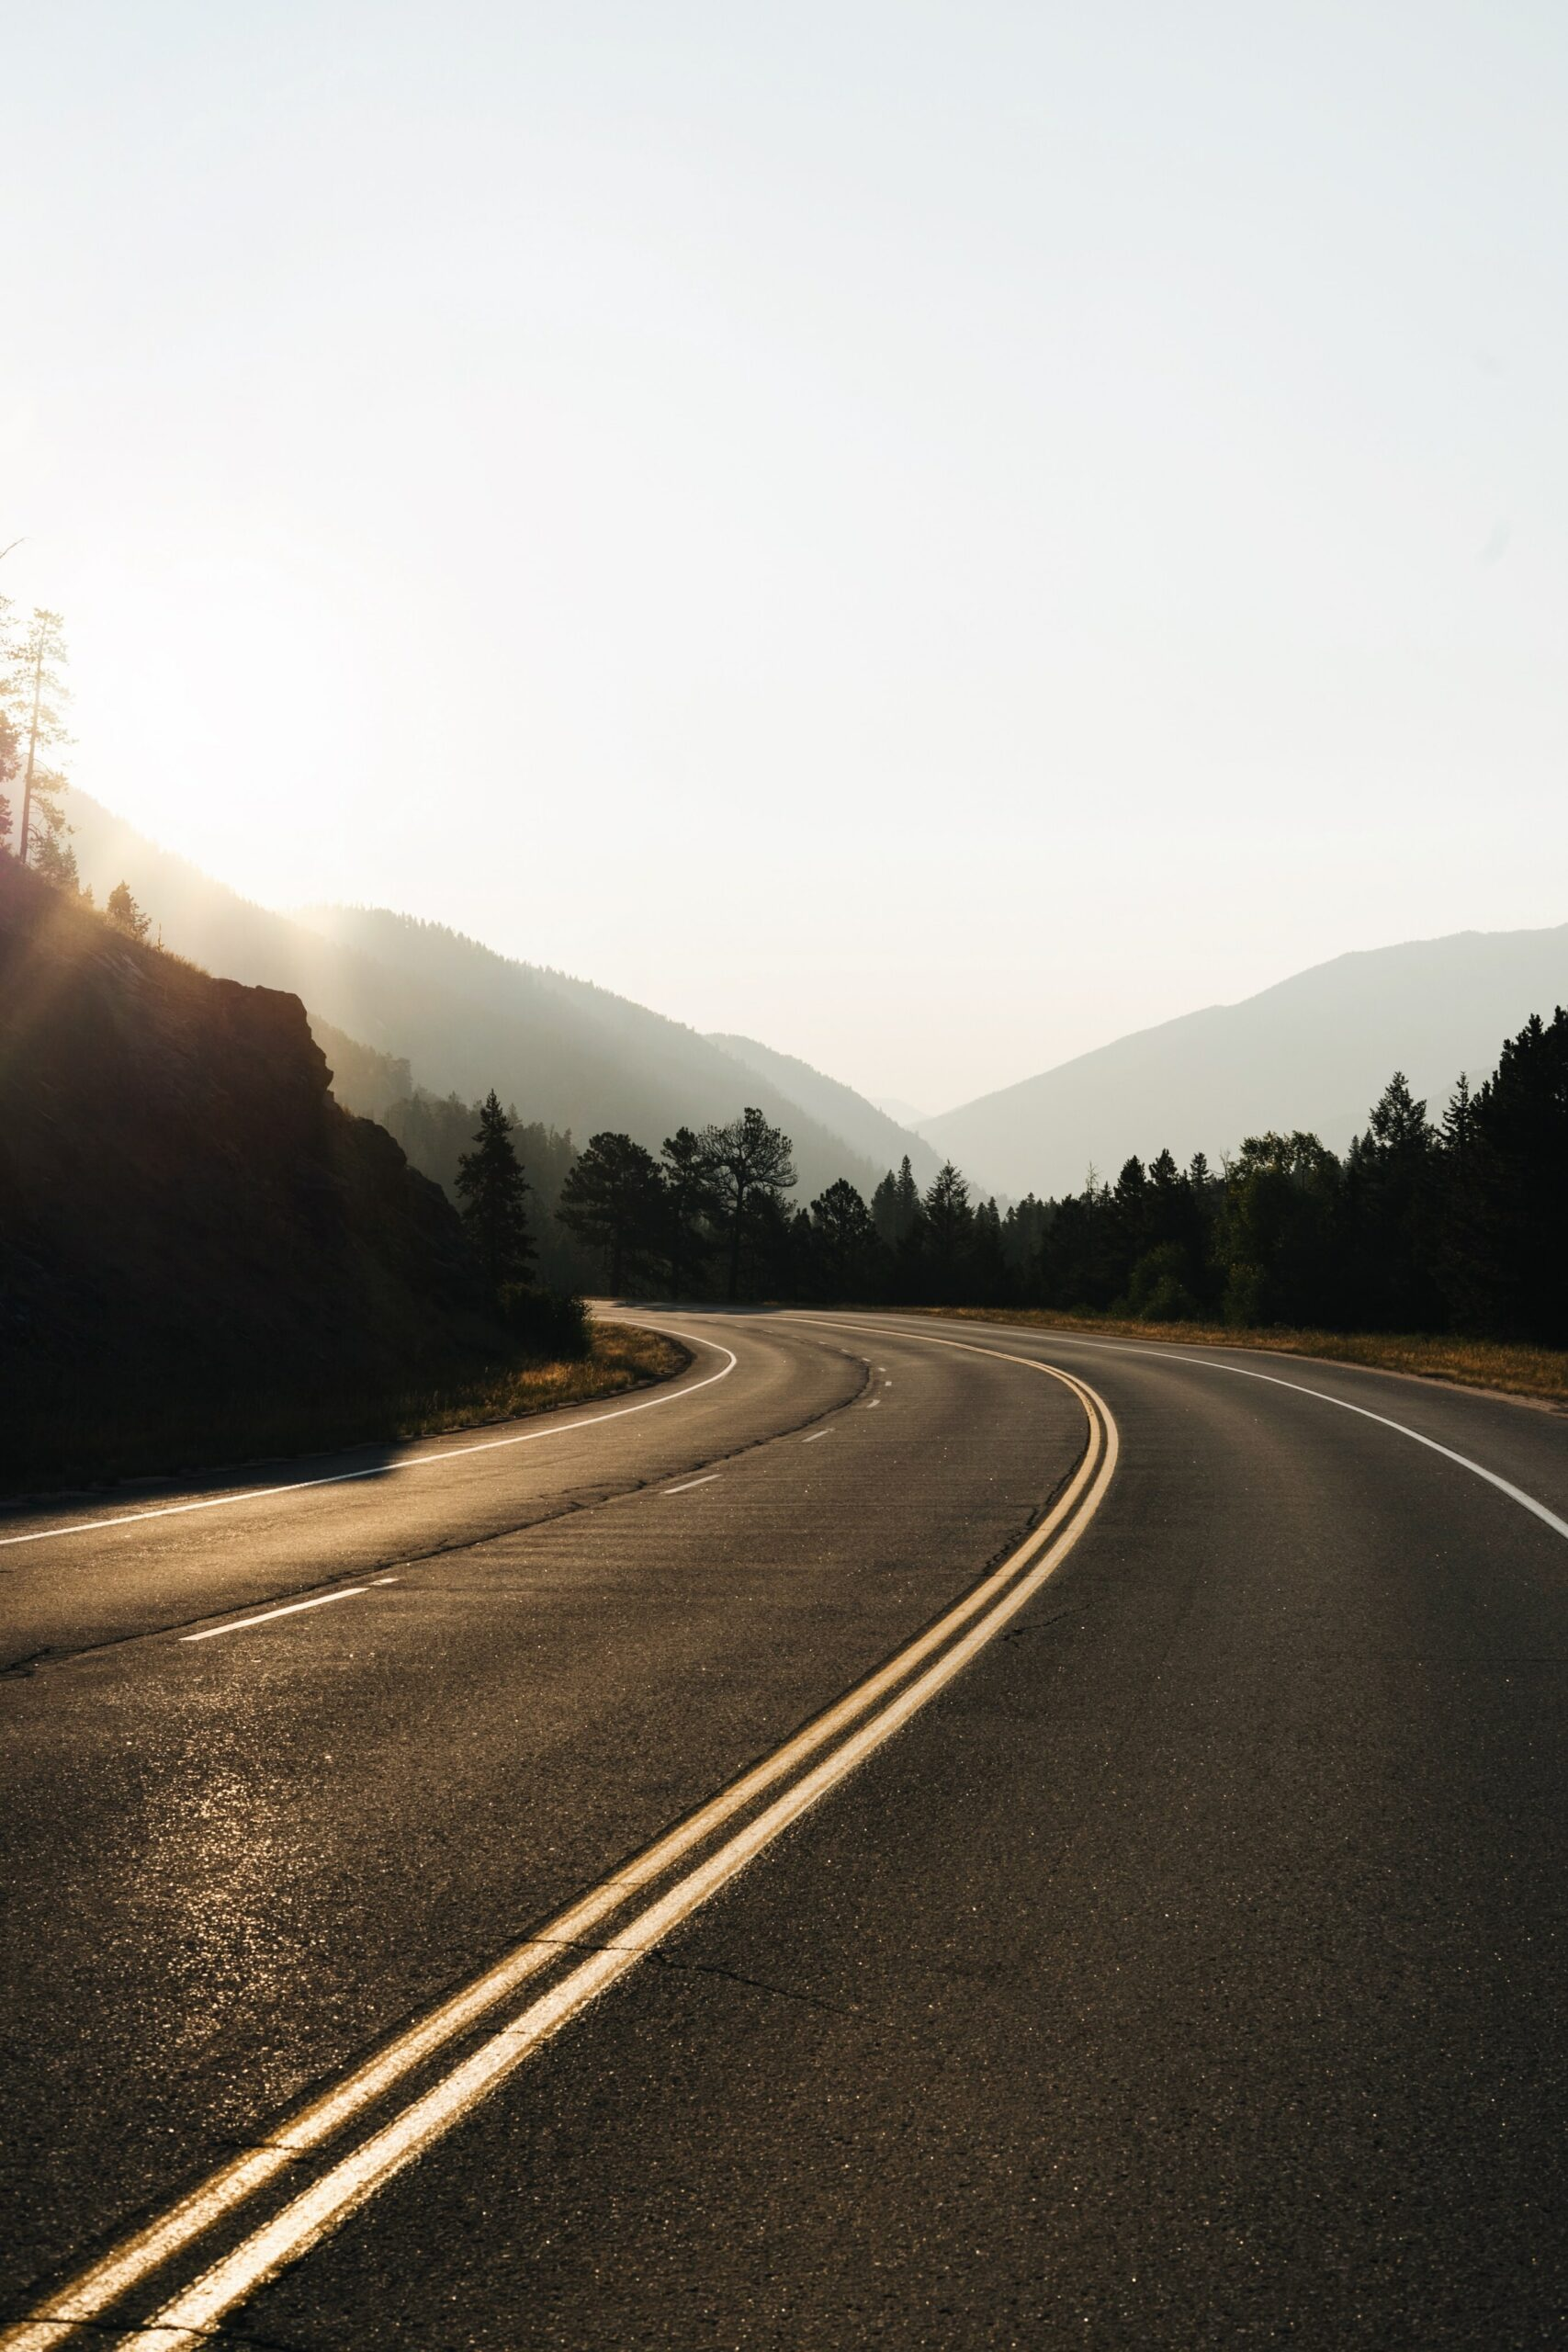 10 Things You Should Never Do On the Road MILTA Technology